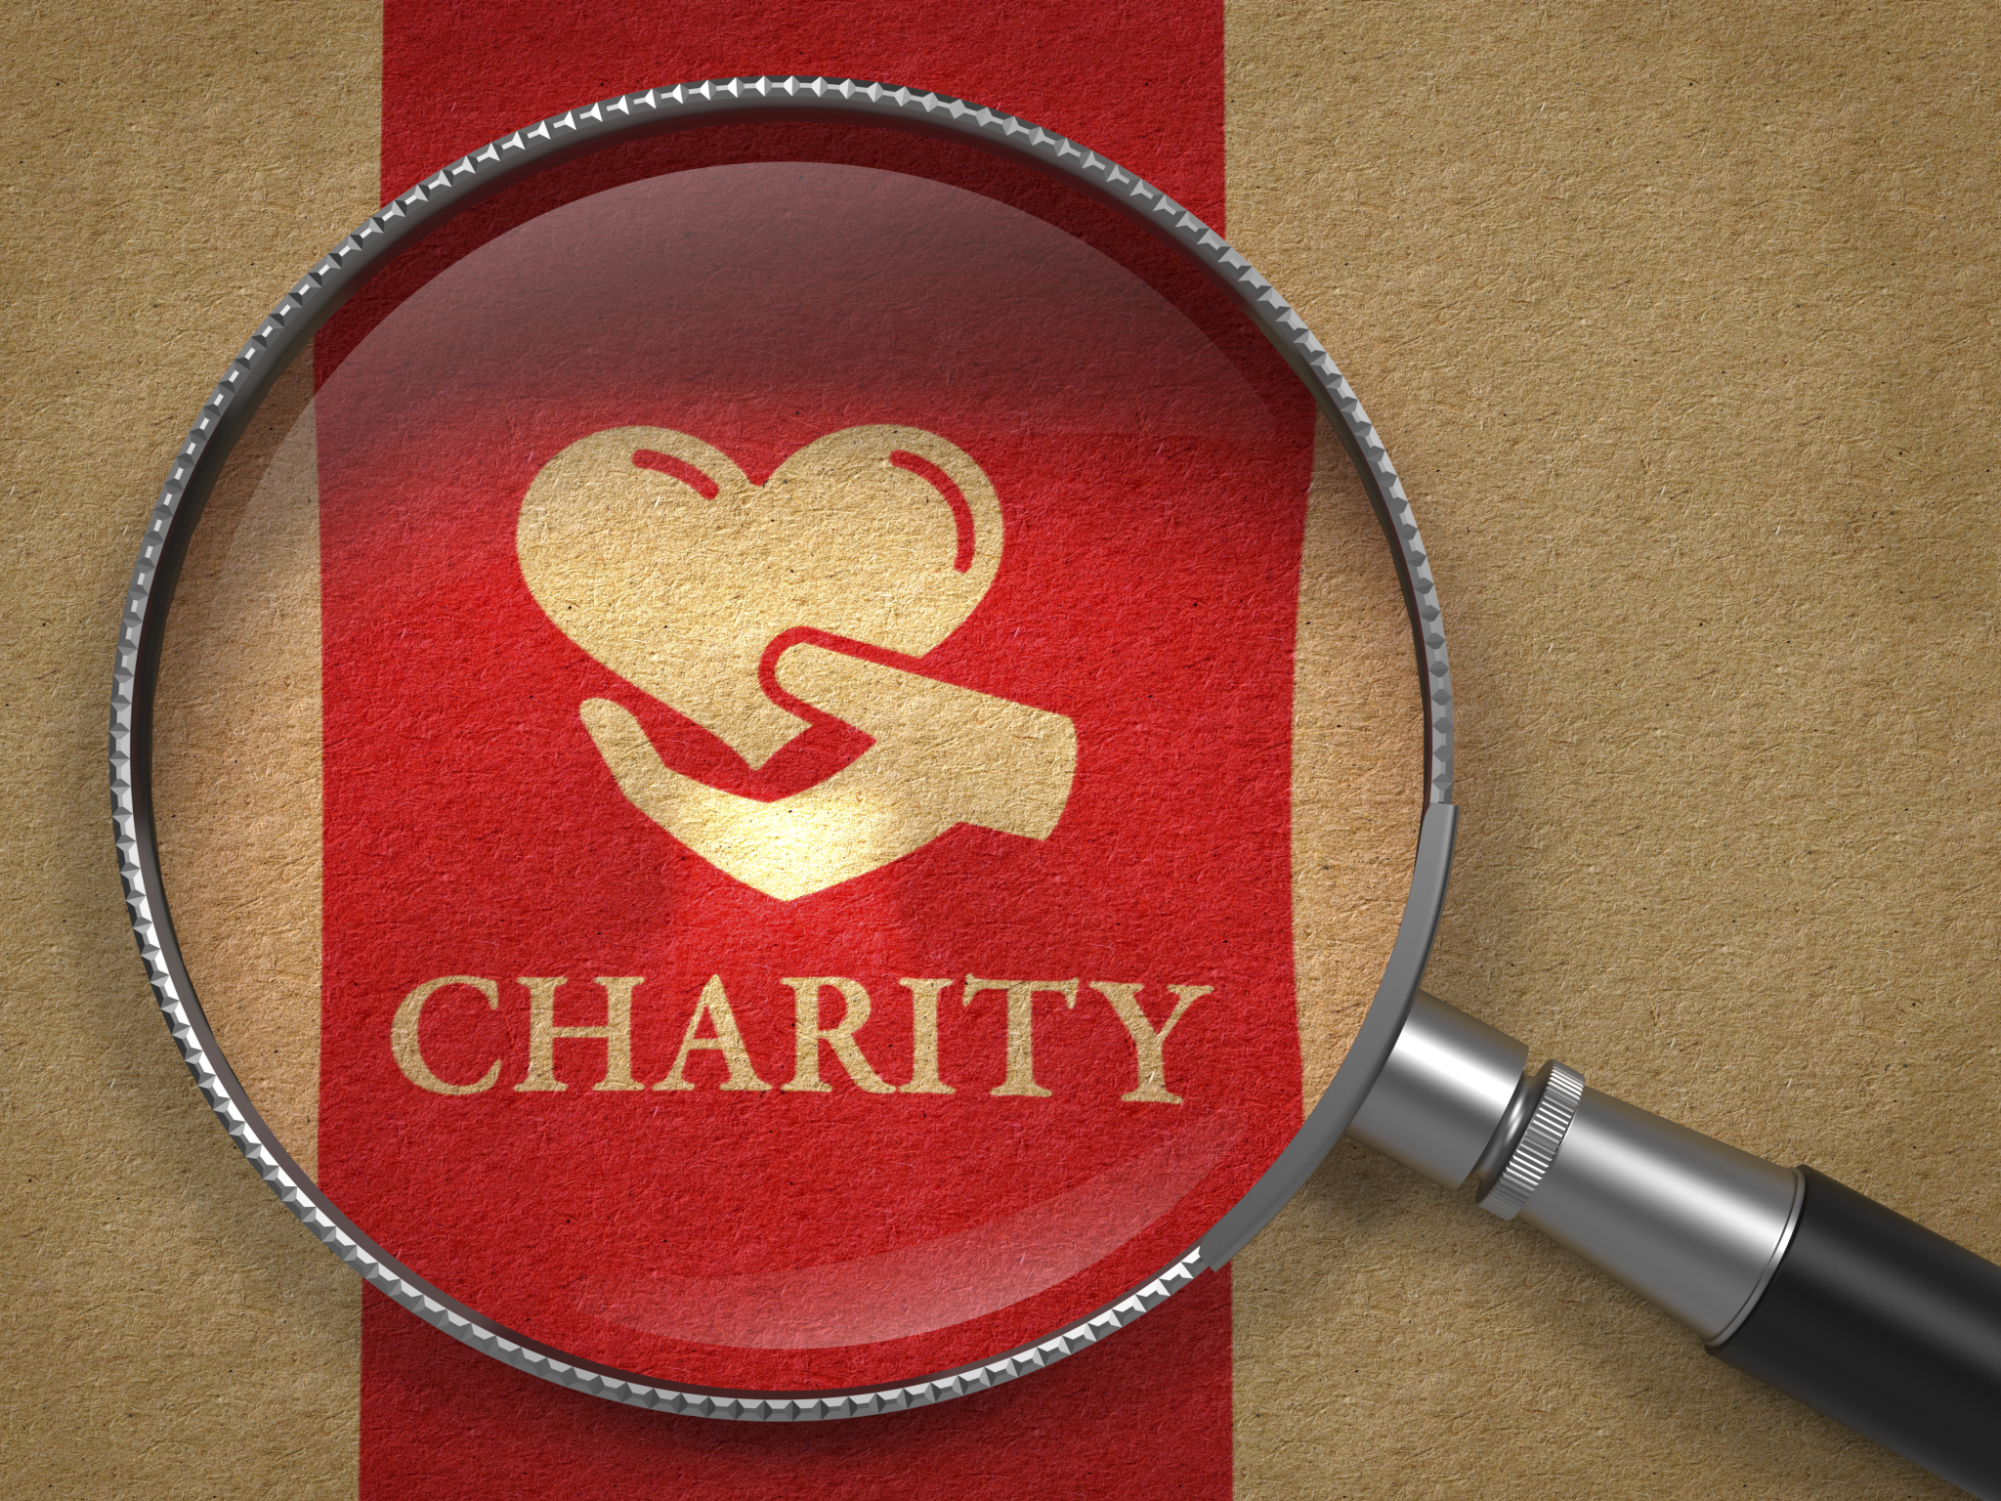 Wedding Gift List Charity : Charity wedding gift lists: what can you register for?Articles ...